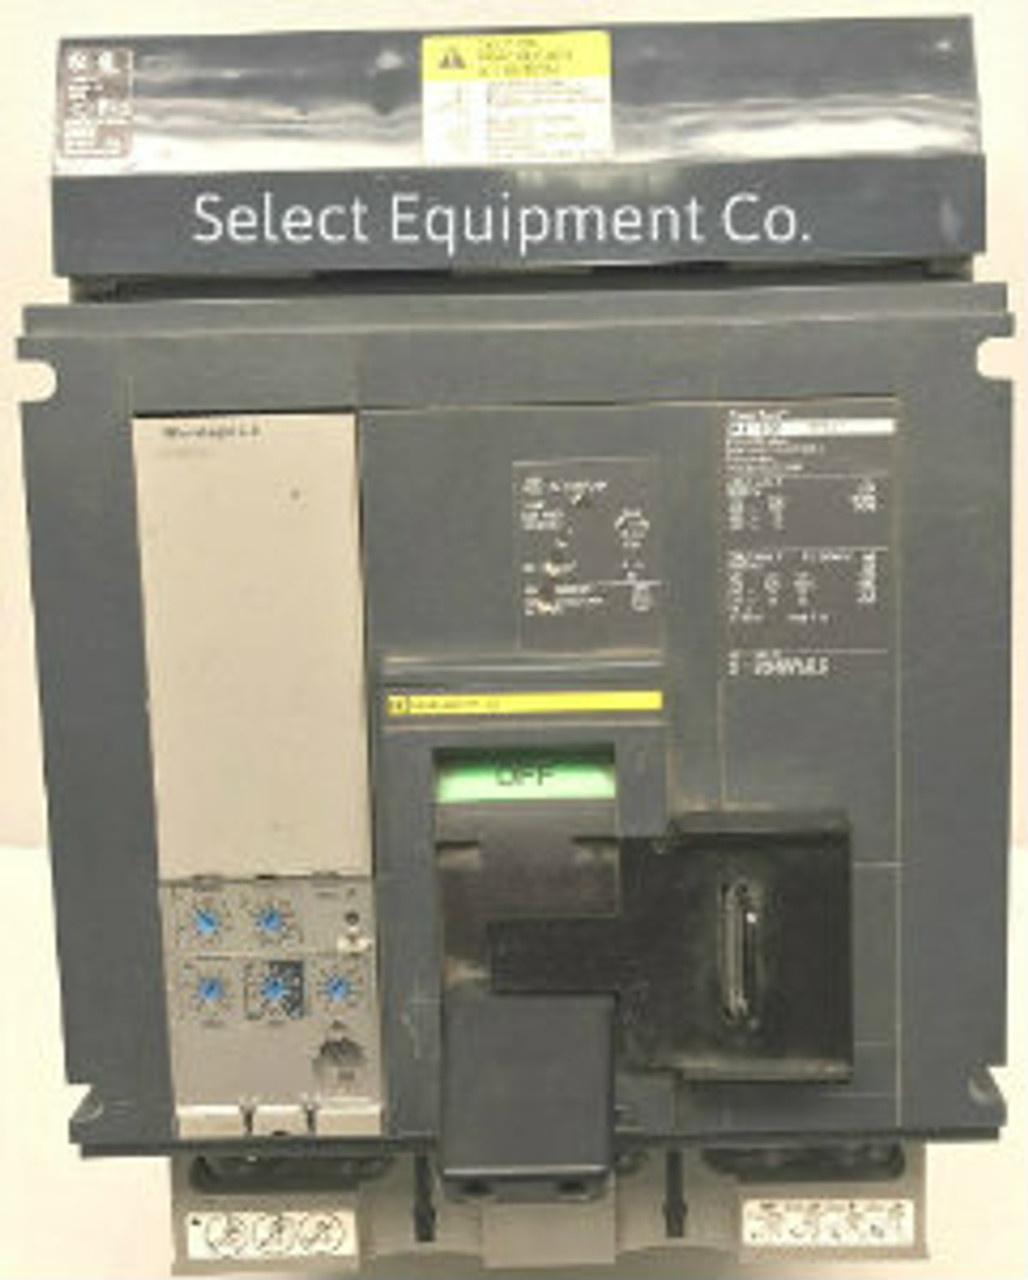 PJA361200 ~ SQUARE D 1200 AMP BREAKER WITH LSI - Select